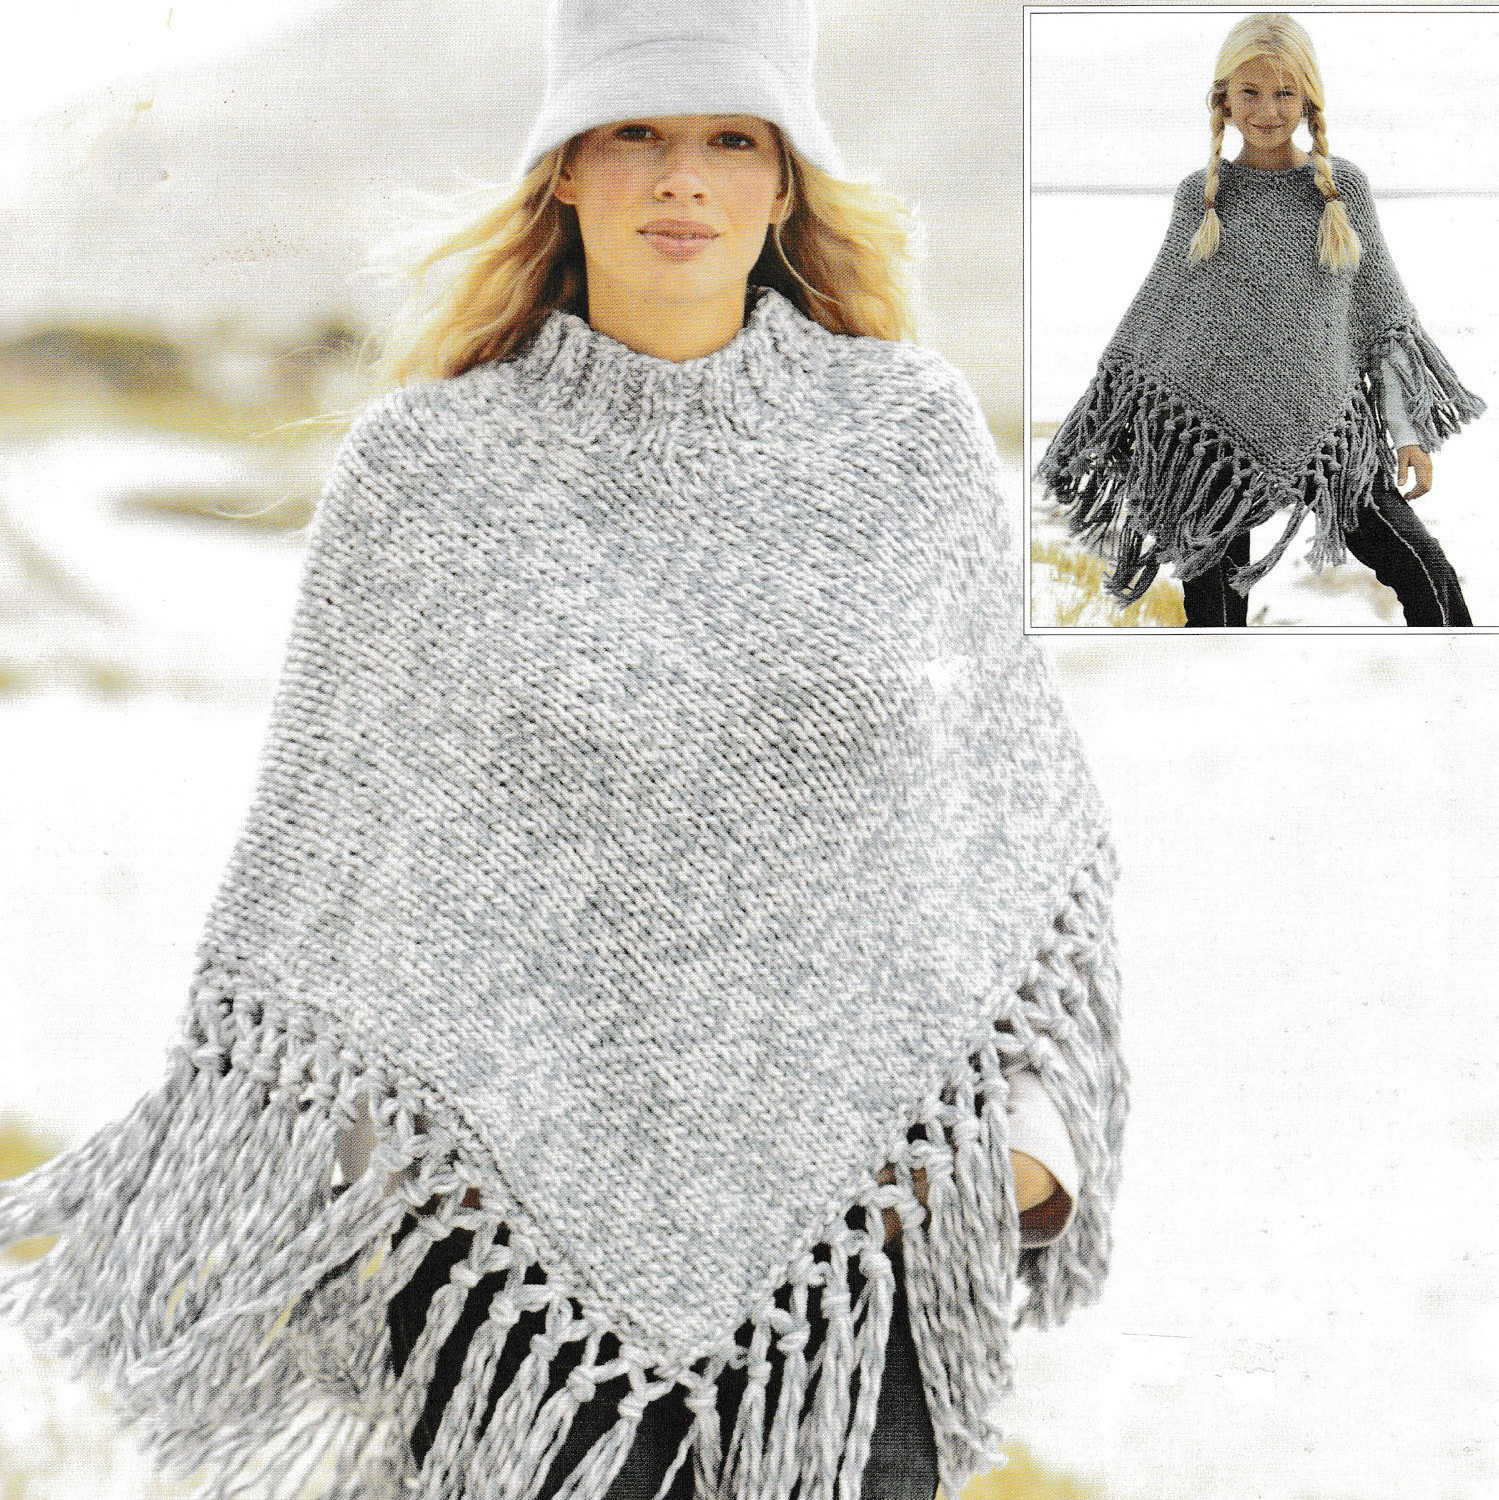 Poncho Knitting Patterns Beautiful Vintage Knitting Pattern La S and Girls Fringed Poncho Of Poncho Knitting Patterns Fresh Click for Close Up Anything and Everything